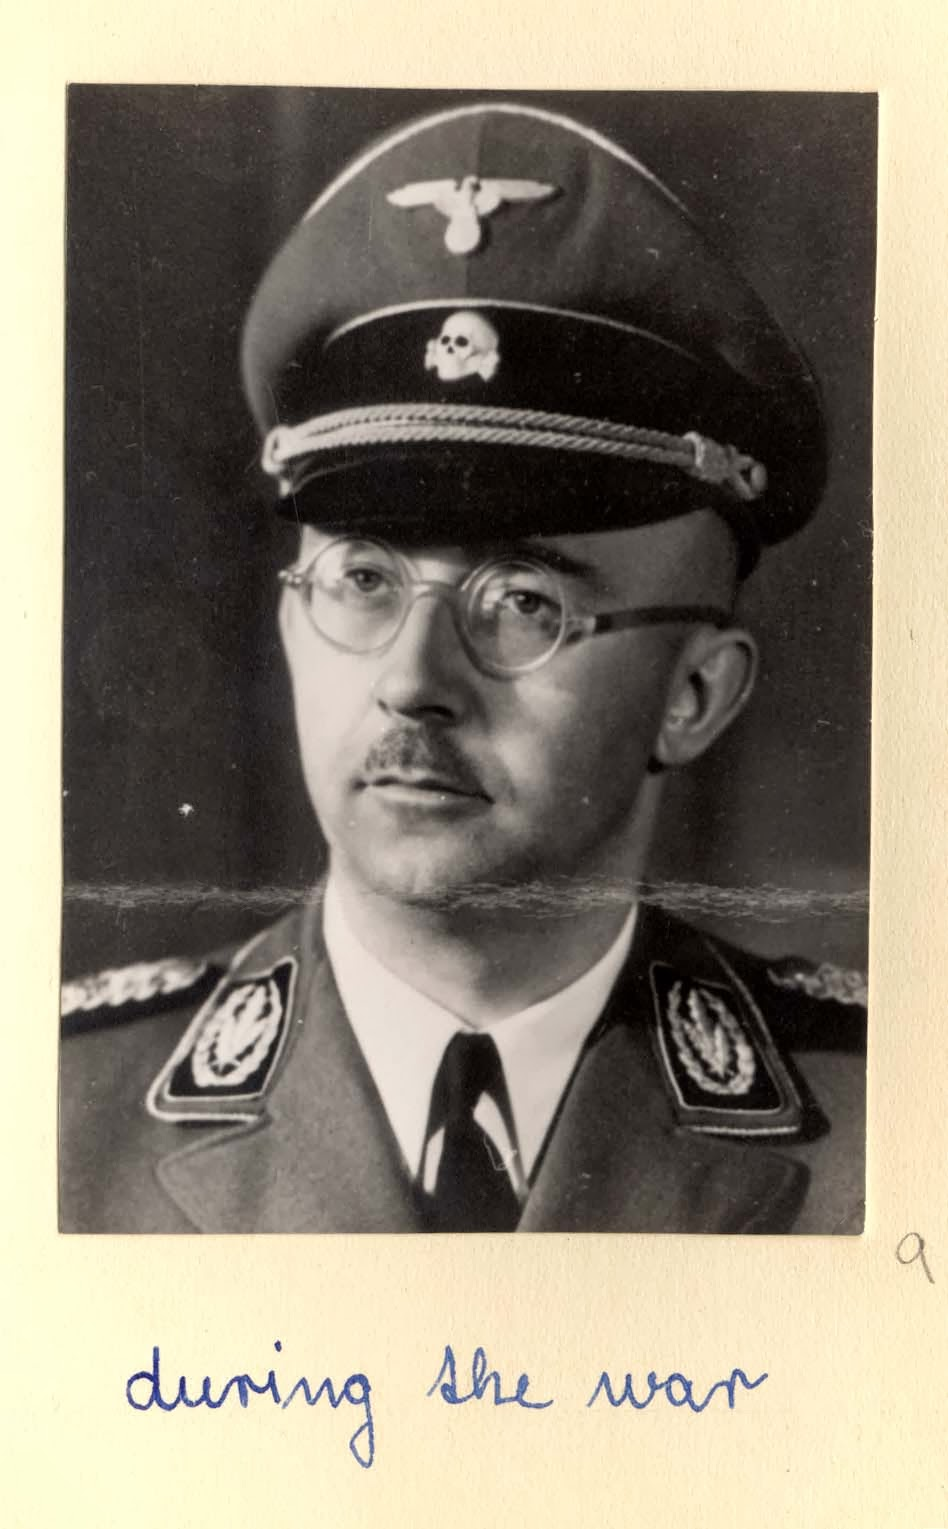 a biography of the life and times of heinrich himmler Heinrich himmler: a life oxford university press 2012 peter longerich, author of the critically acclaimed book holocaust , has written what is almost the definitive biography of heinrich himmler, the architect of the nazi genocide against the jews.